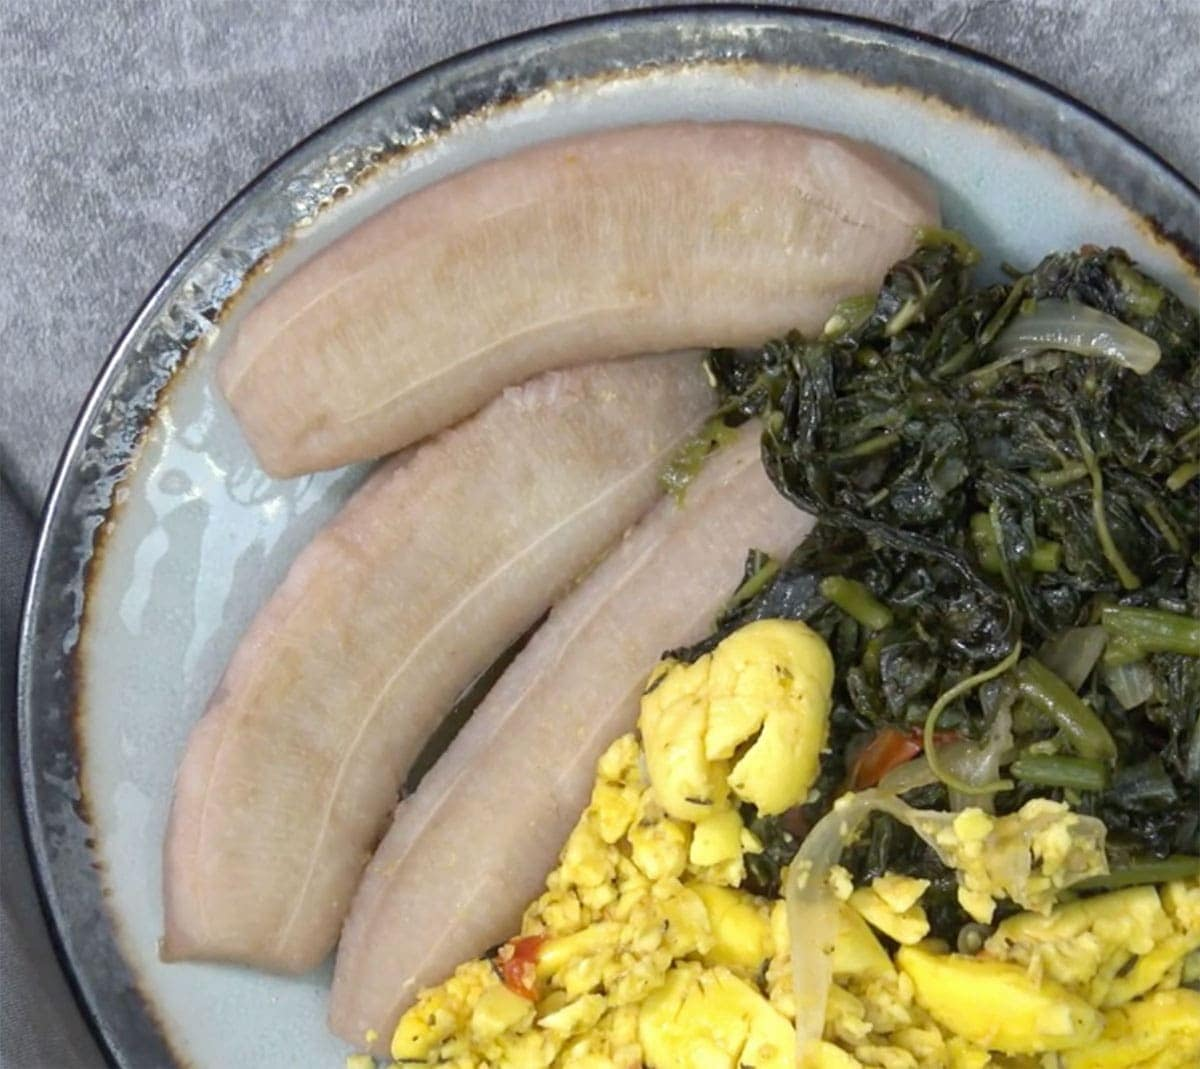 boiled green banana on a blue plate with ackee and callaloo on a grey background